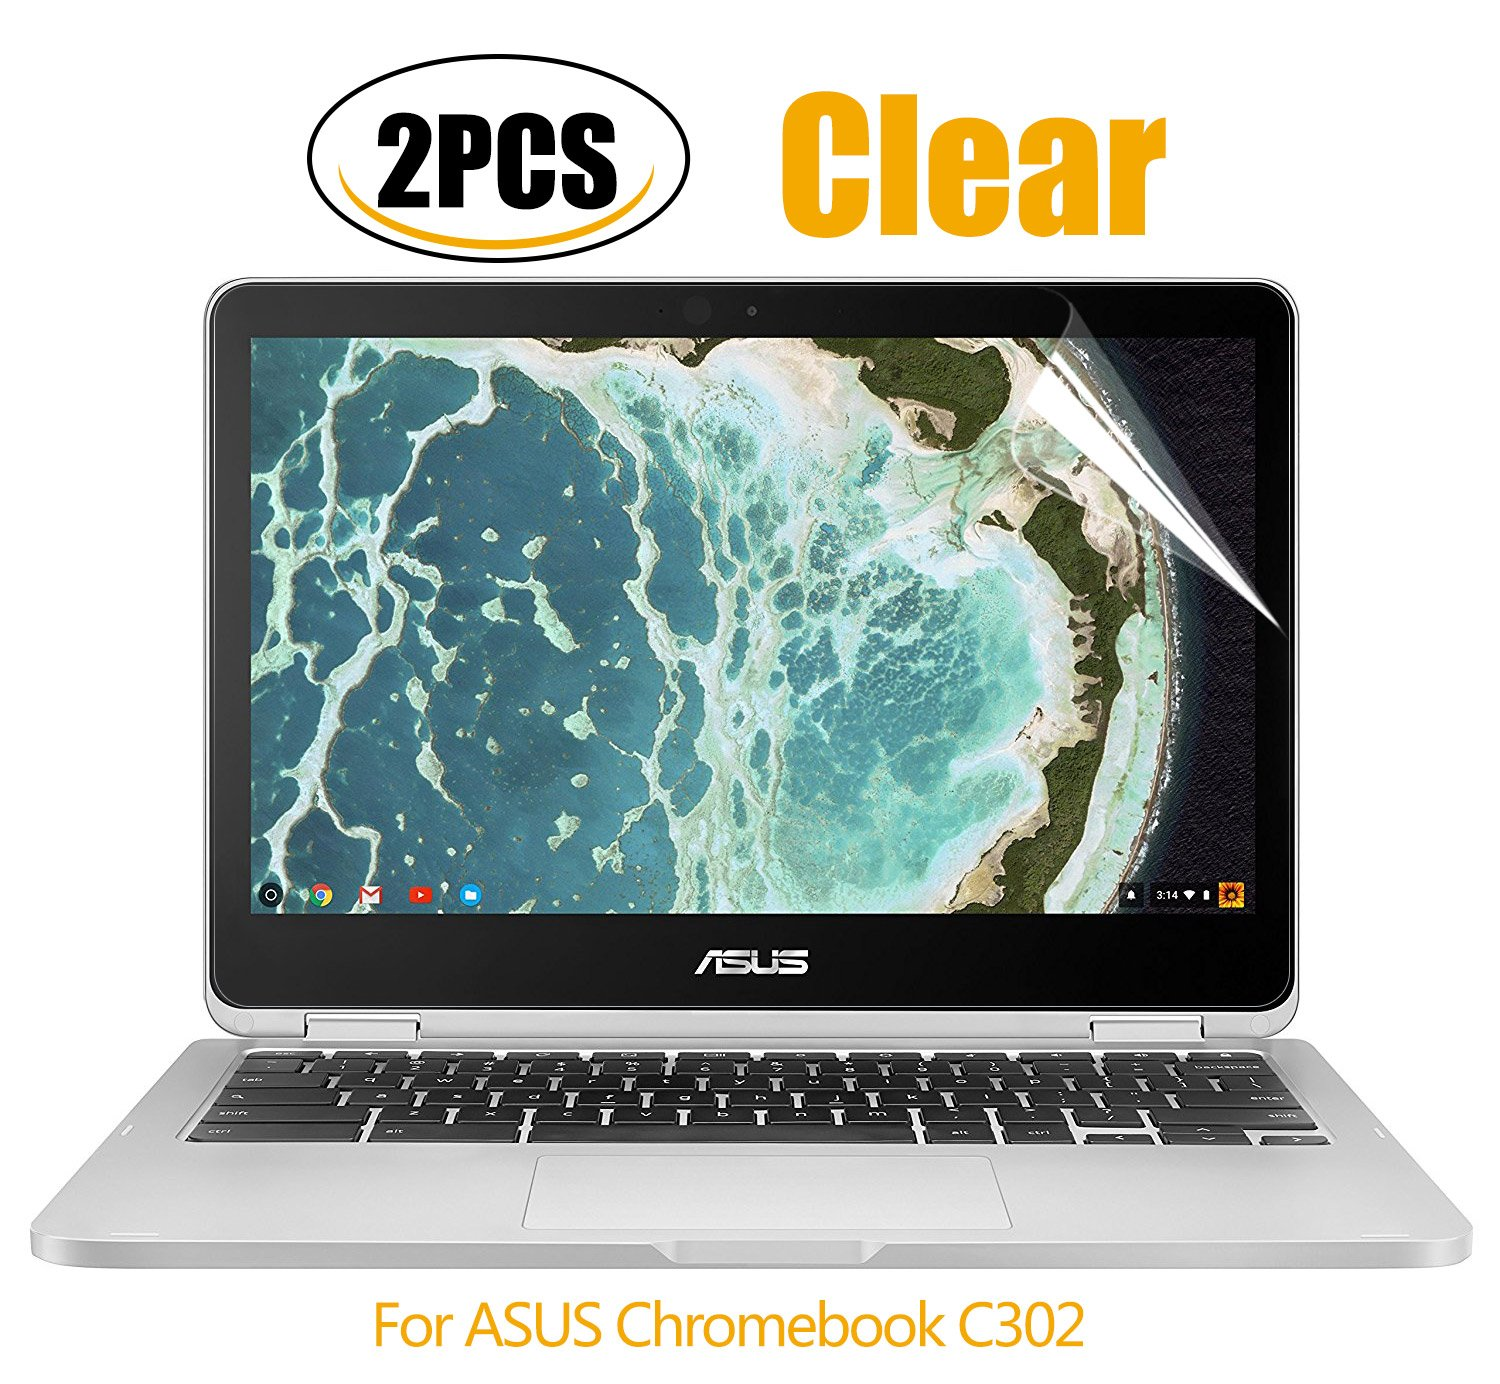 [2PCS PACK]ASUS Chromebook Flip 12.5'' Screen Protector, CaseBuy HD Clear Whole Screen Protective Film for ASUS Chromebook Flip C302CA-DHM4 12.5-Inch Touchscreen, 2-Piceces/Pack